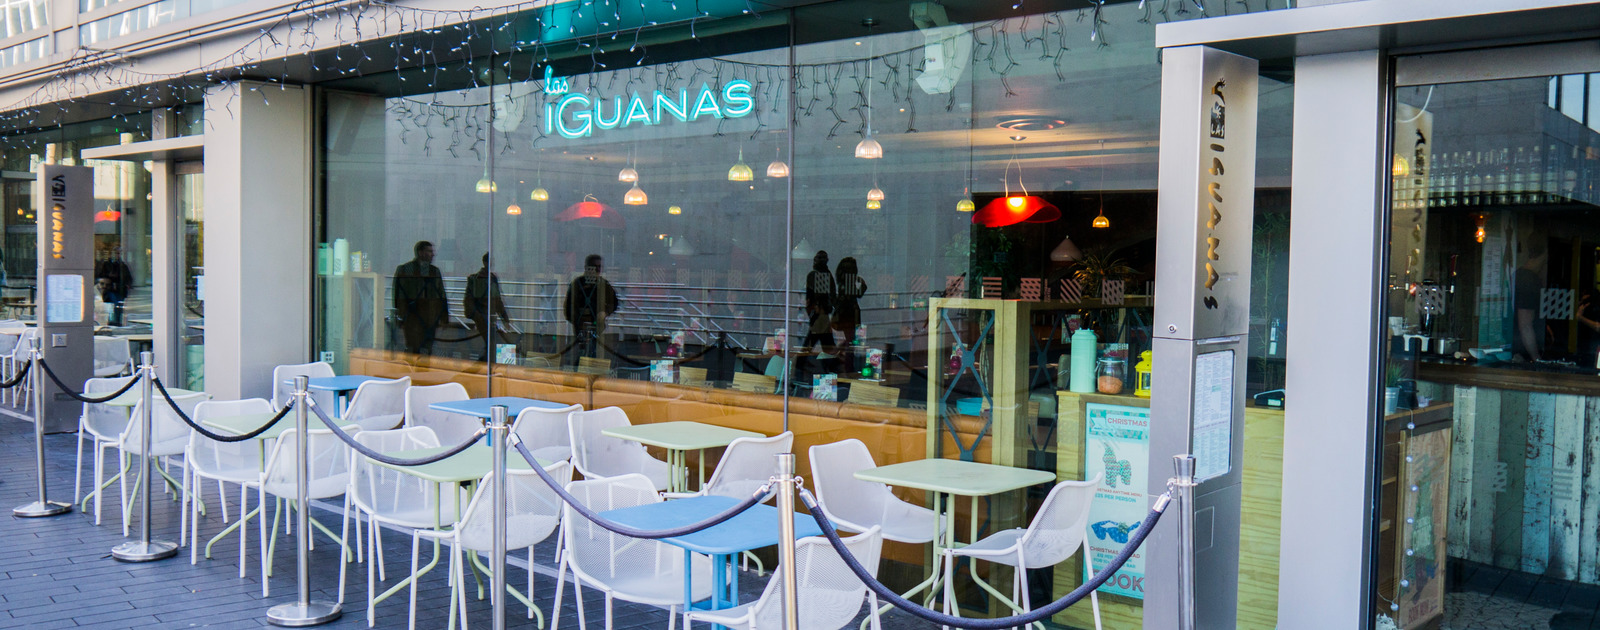 Exterior view of Las Iguanas at the Southbank Centre